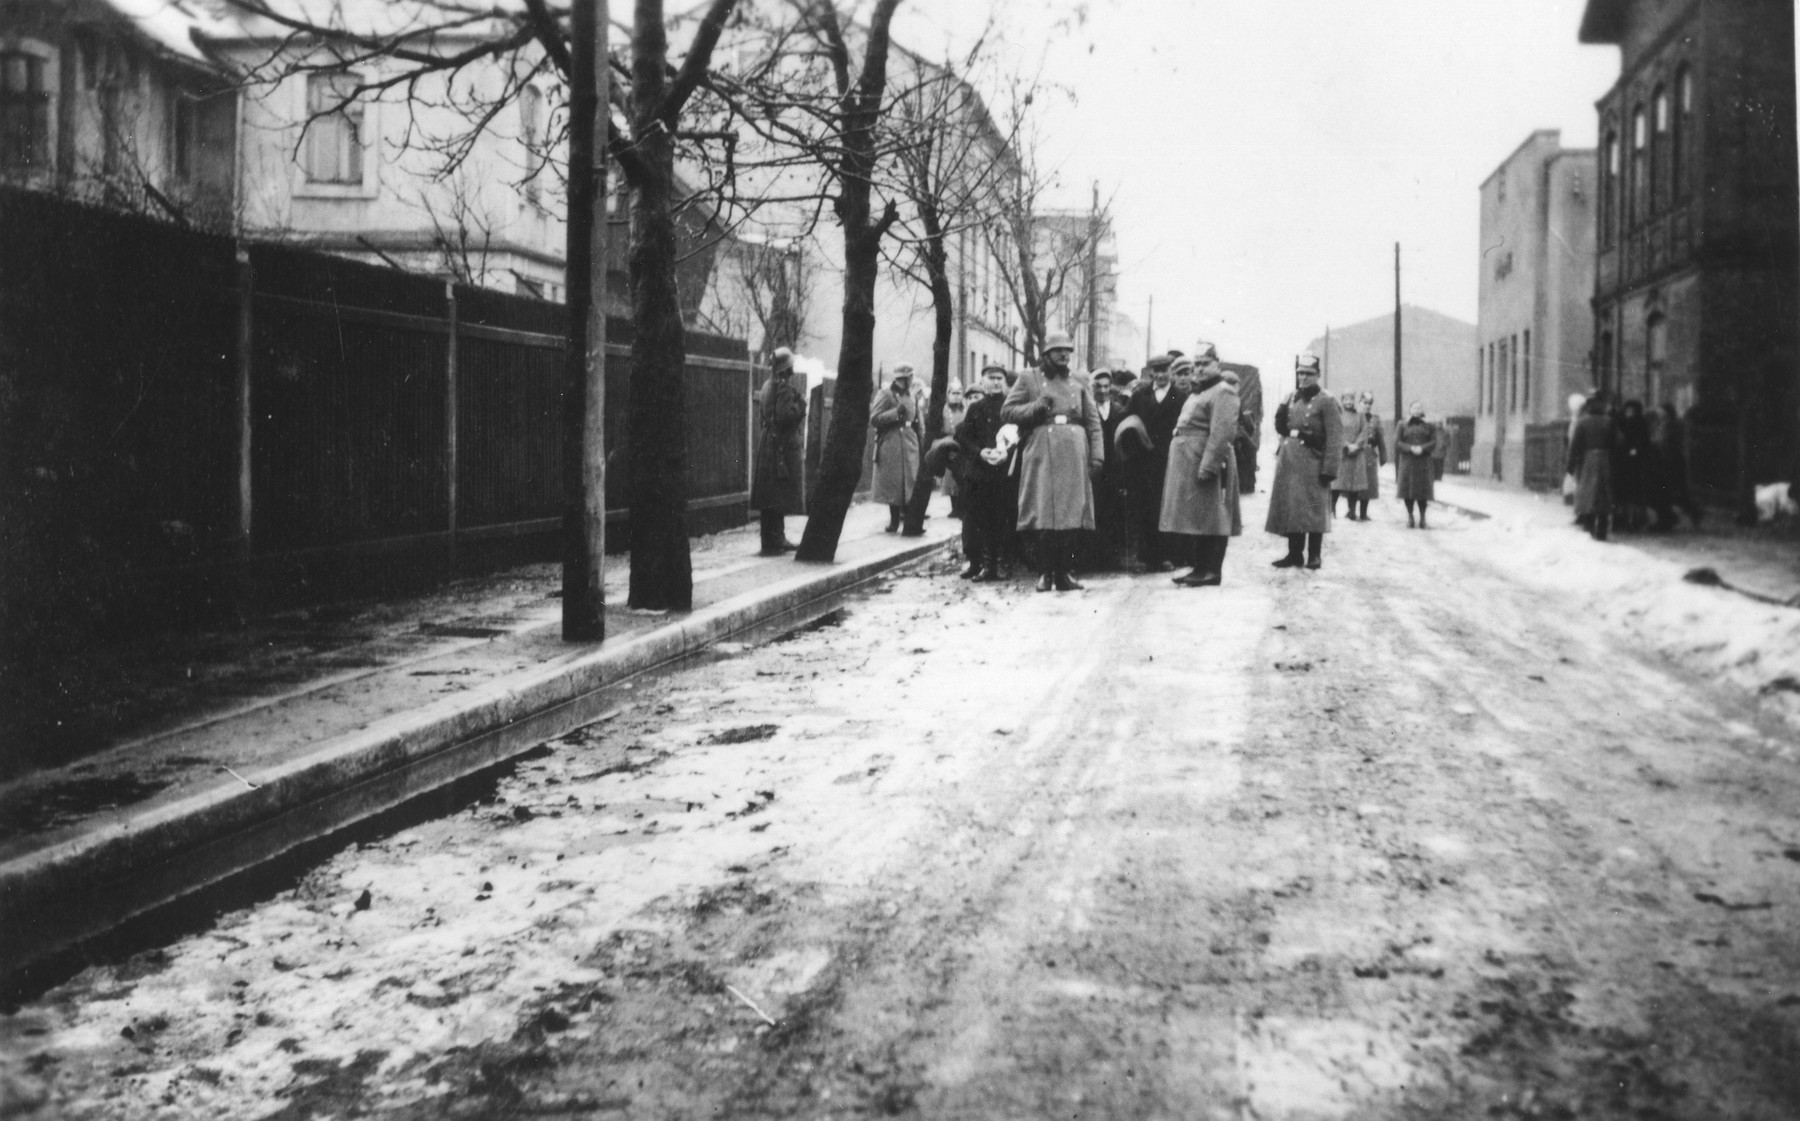 Jews are rounded up and assembled in columns on a street in the Zawiercie ghetto.